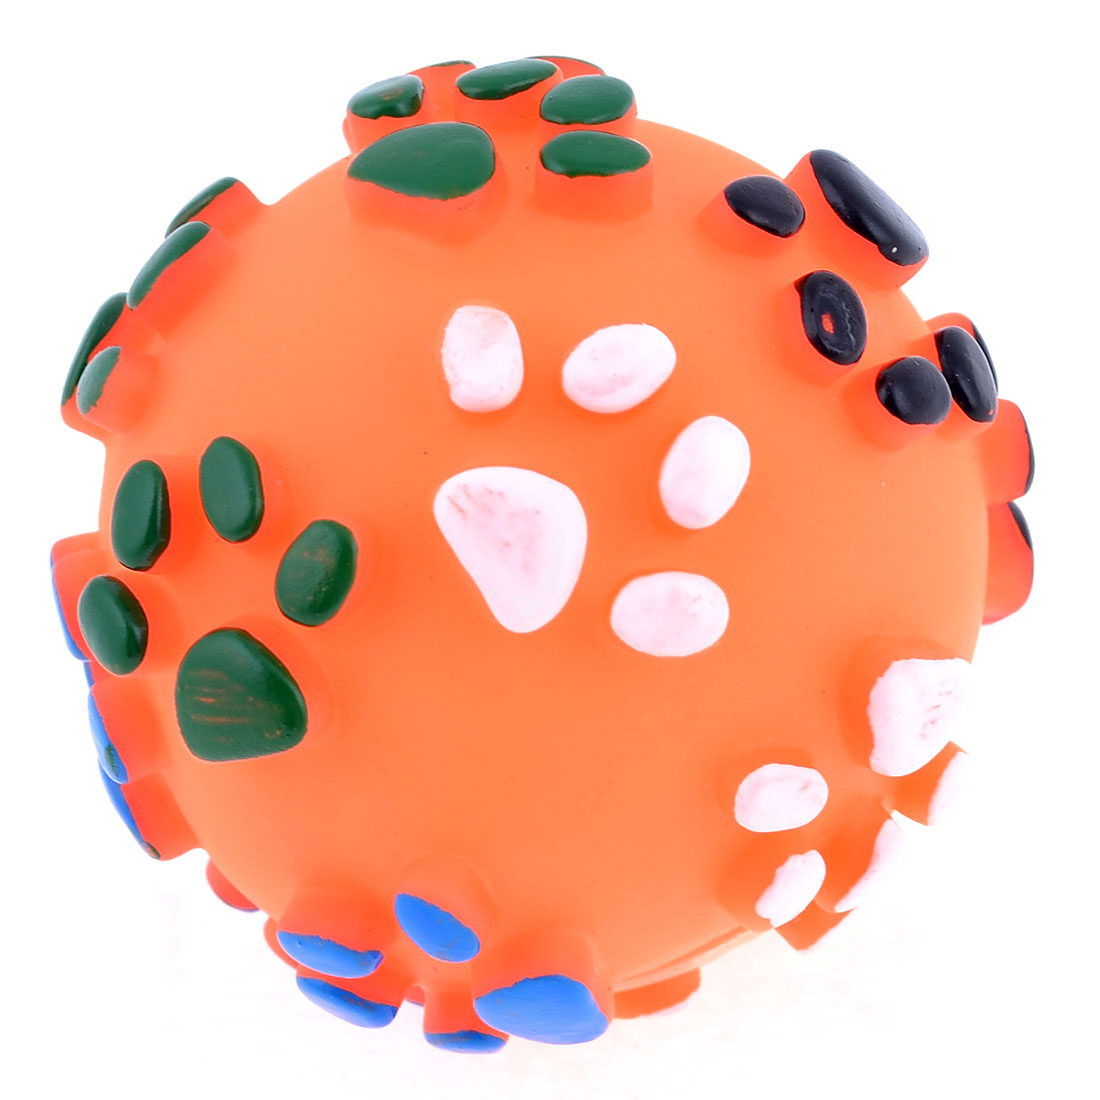 Textured Paw Design Orange Rubber Round Ball Squeaky Toy for Pet Dog Poodle